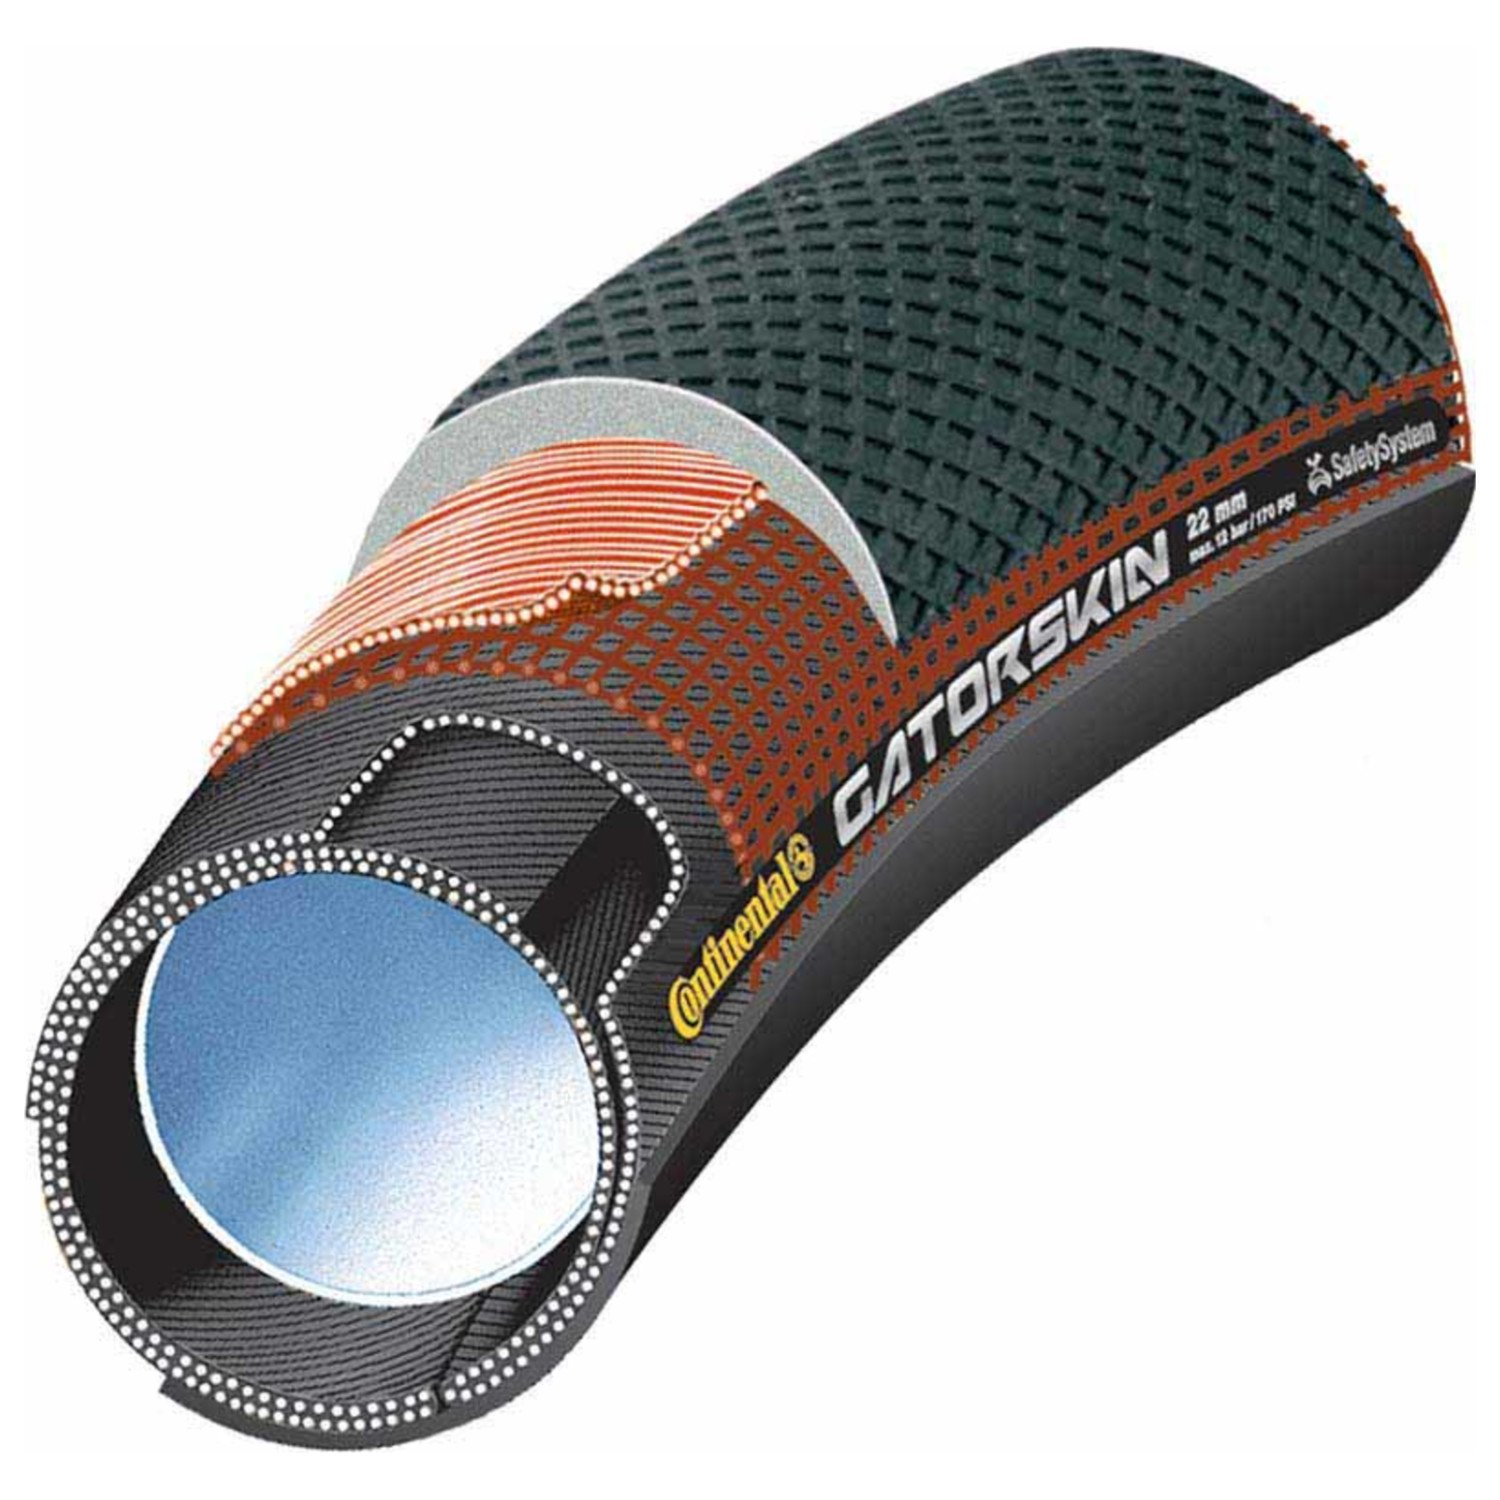 Continental Sprinter Gatorskin Road Bike Tubular 28'' x 25 mm 700c Tire Pair by Continental (Image #3)